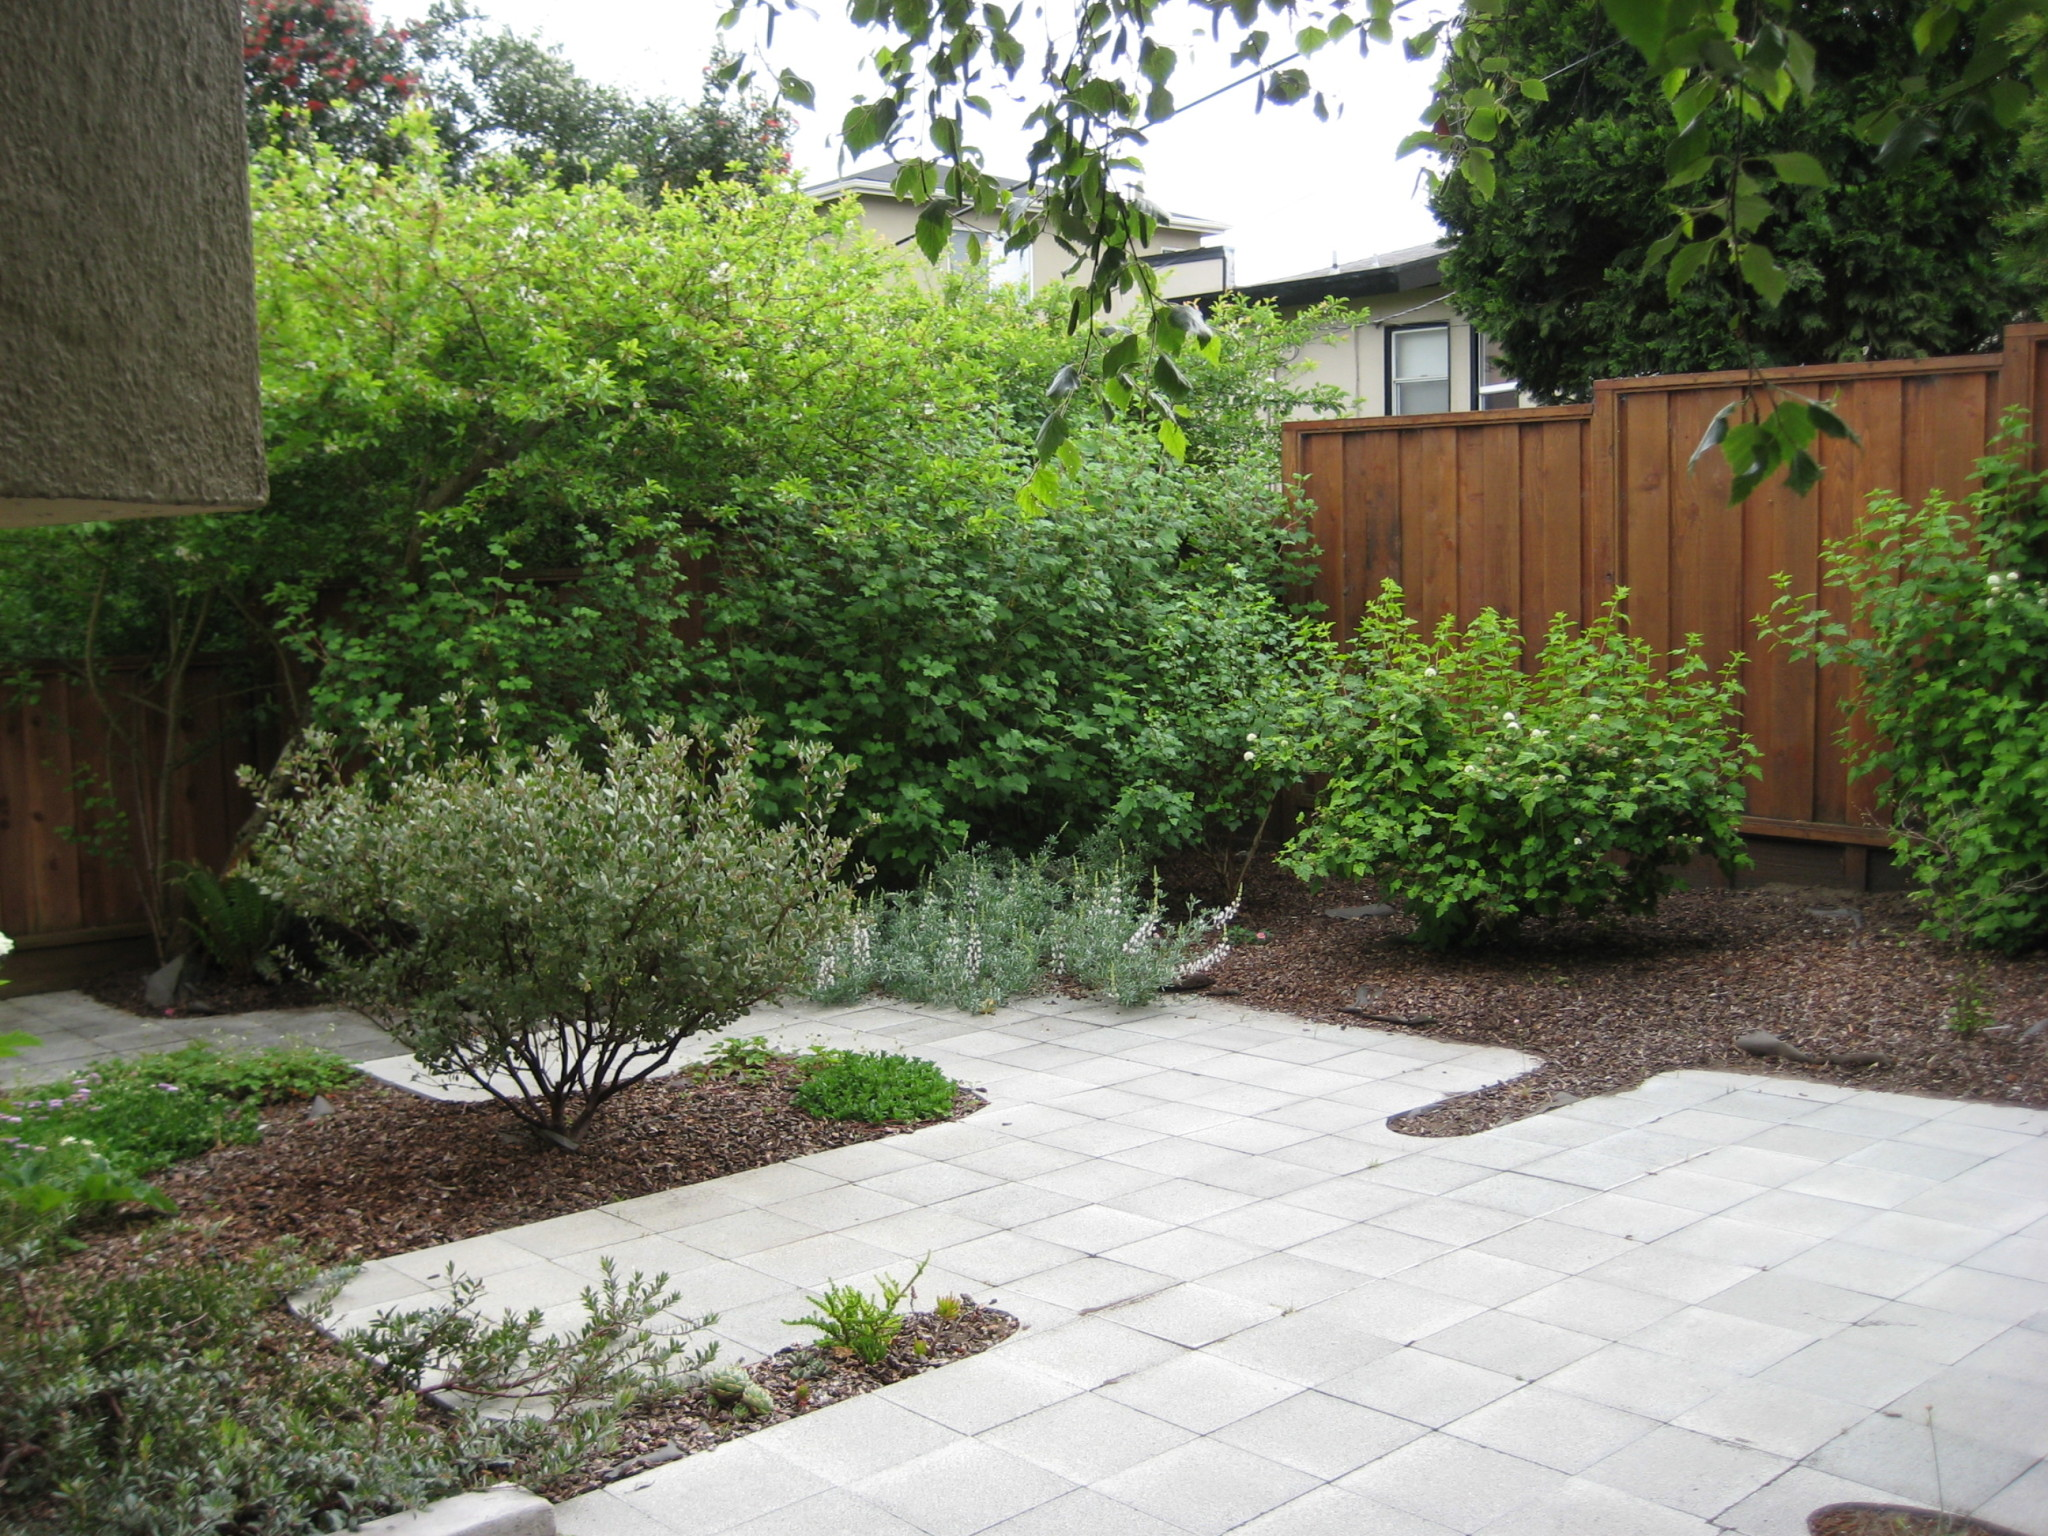 Landscaping Design | Jmarvinhandyman